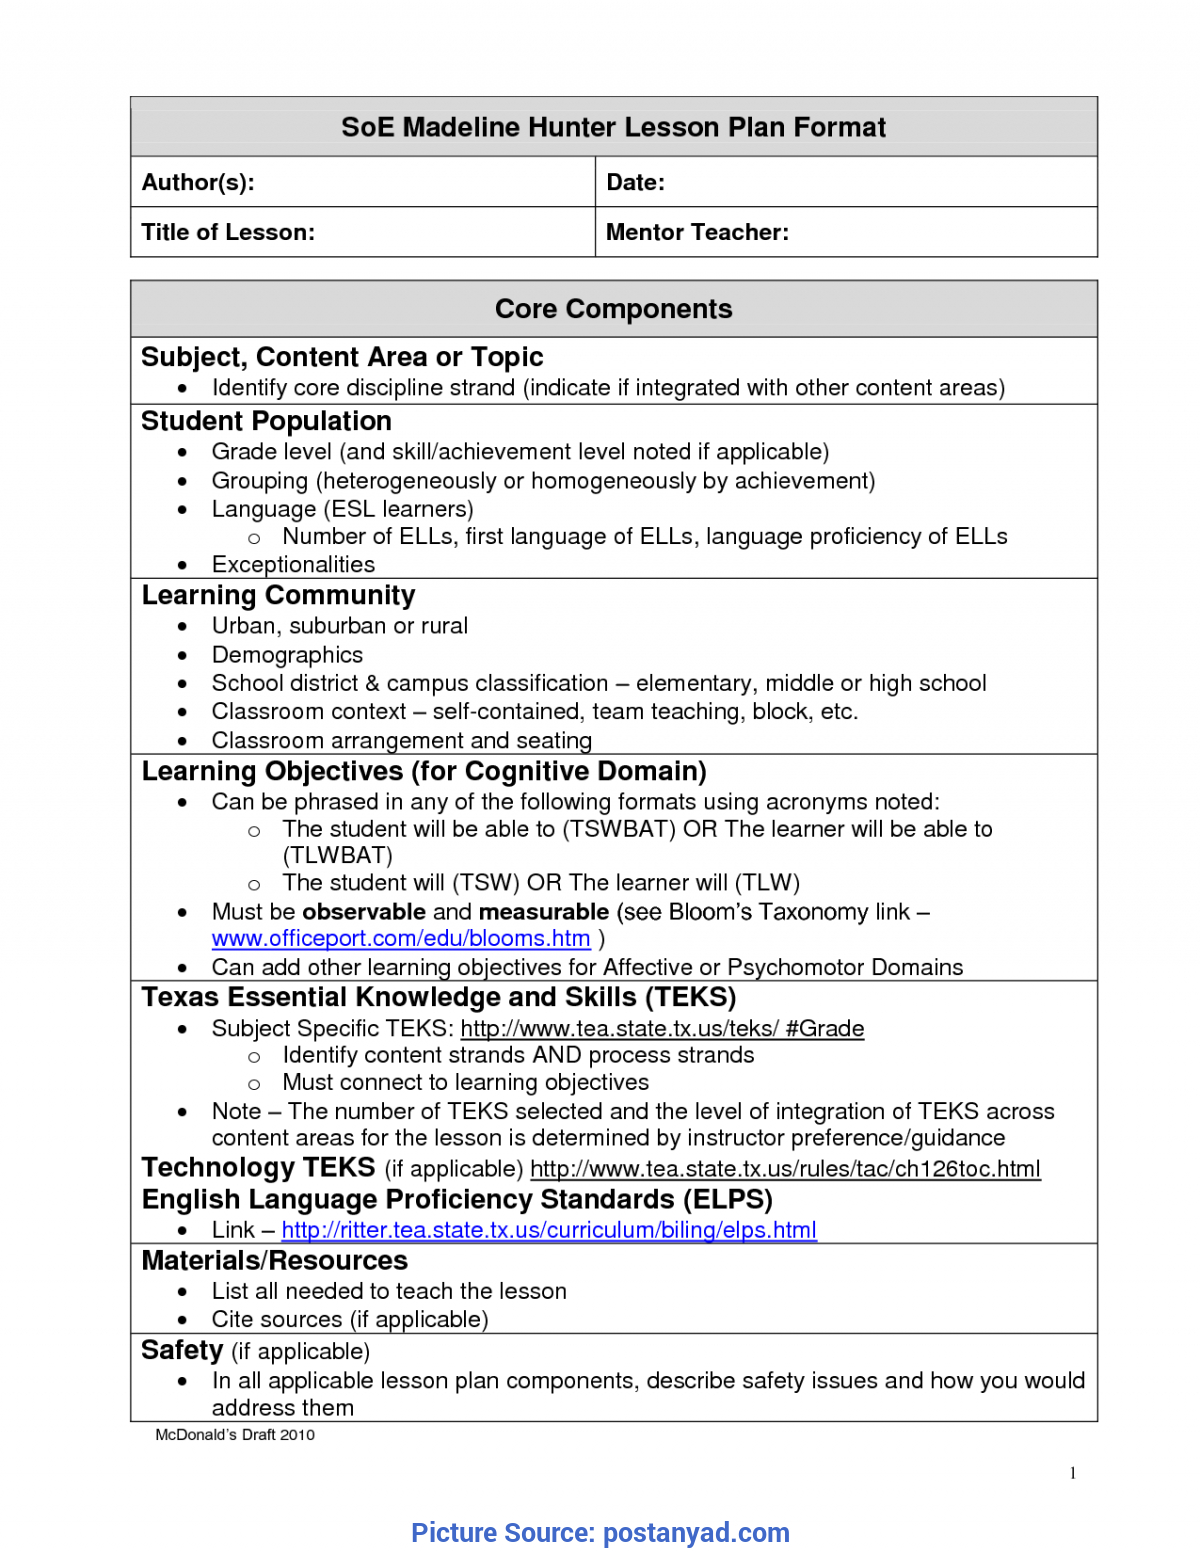 Best Madeline Hunter Lesson Plan Components Madeline Hunter Within Madeline Hunter Lesson Plan Template Word